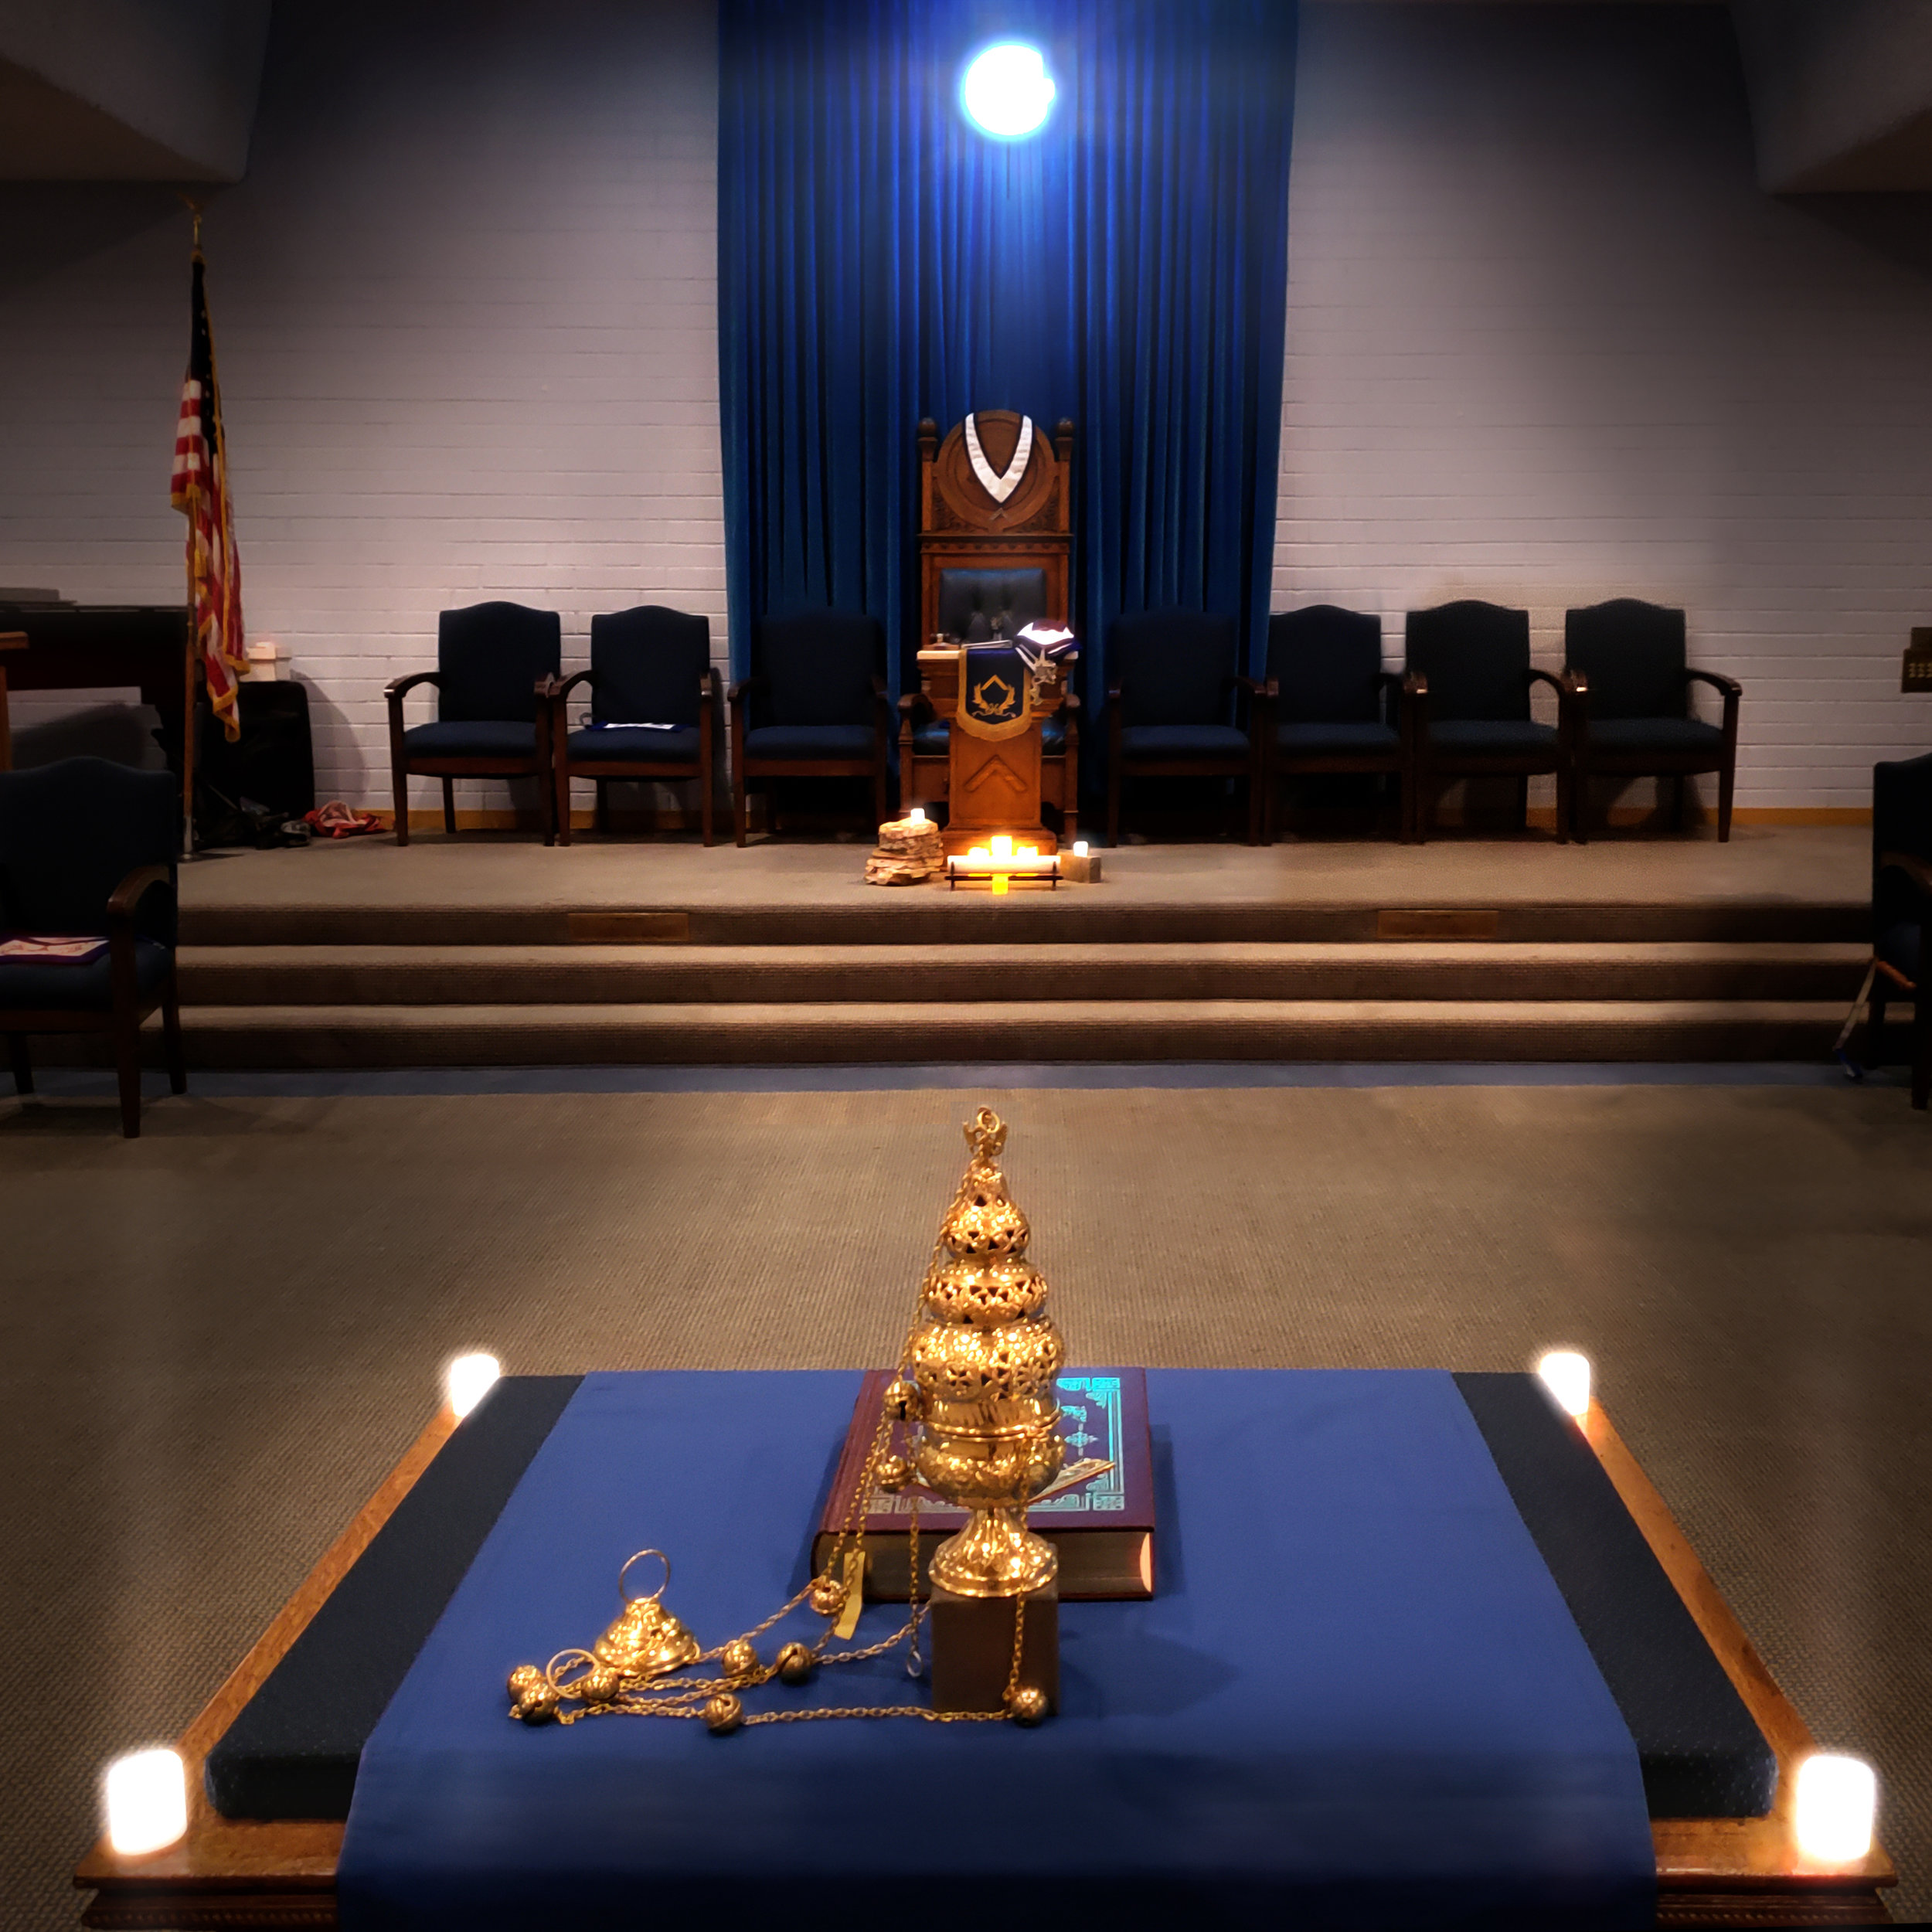 Lodge Room with Incense